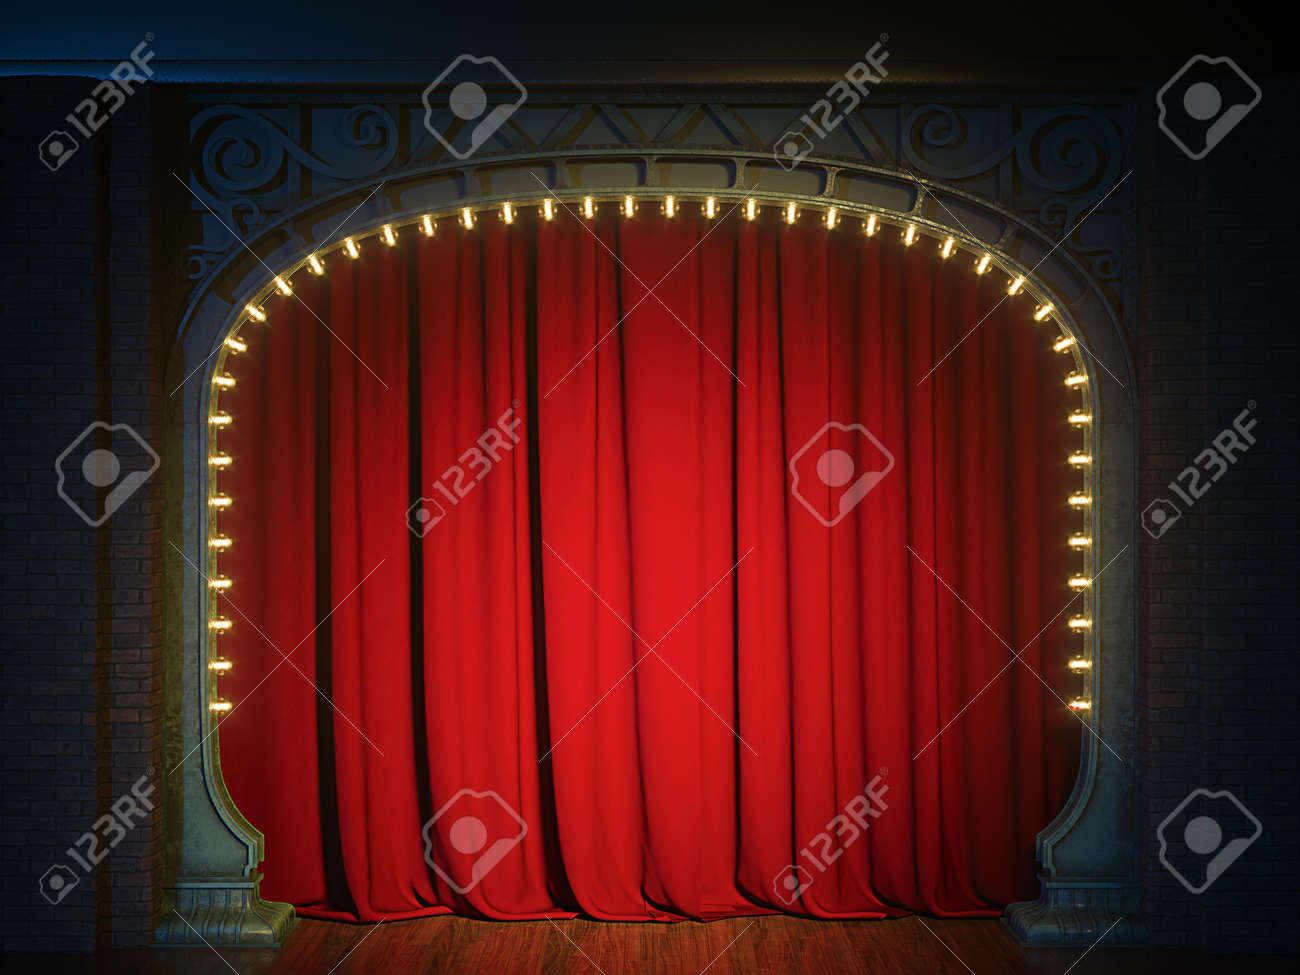 Dark empty cabaret or comedy club stage with red curtain and art nuovo arch. 3d render - 167404378